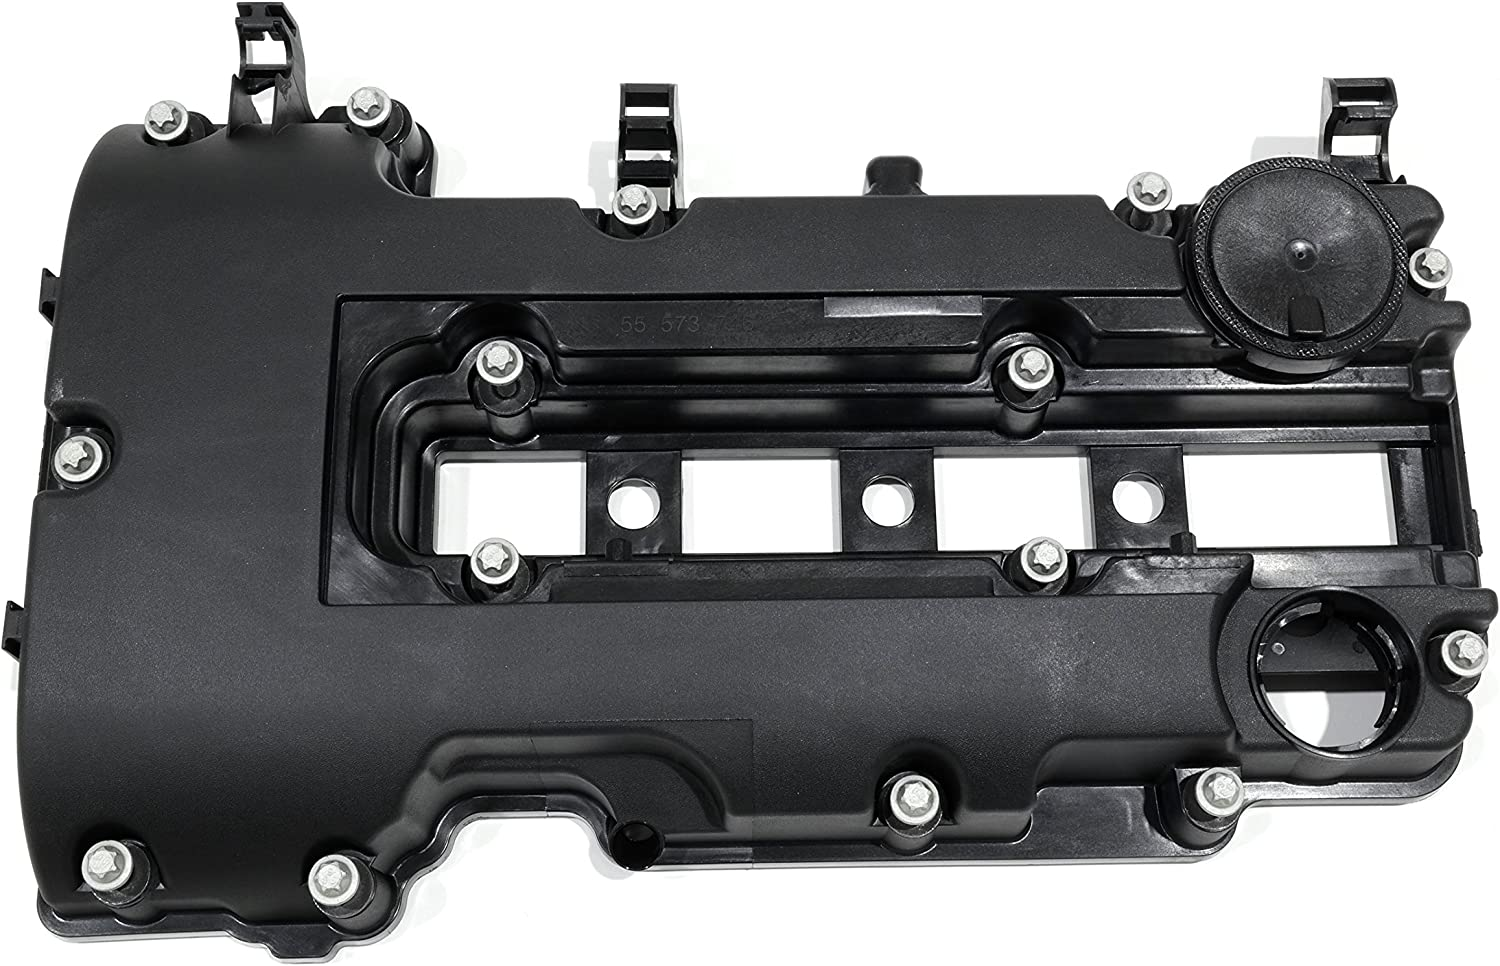 Genuine General Motors 55573746 - Camshaft Cover (Replaced by Part: 25198874)